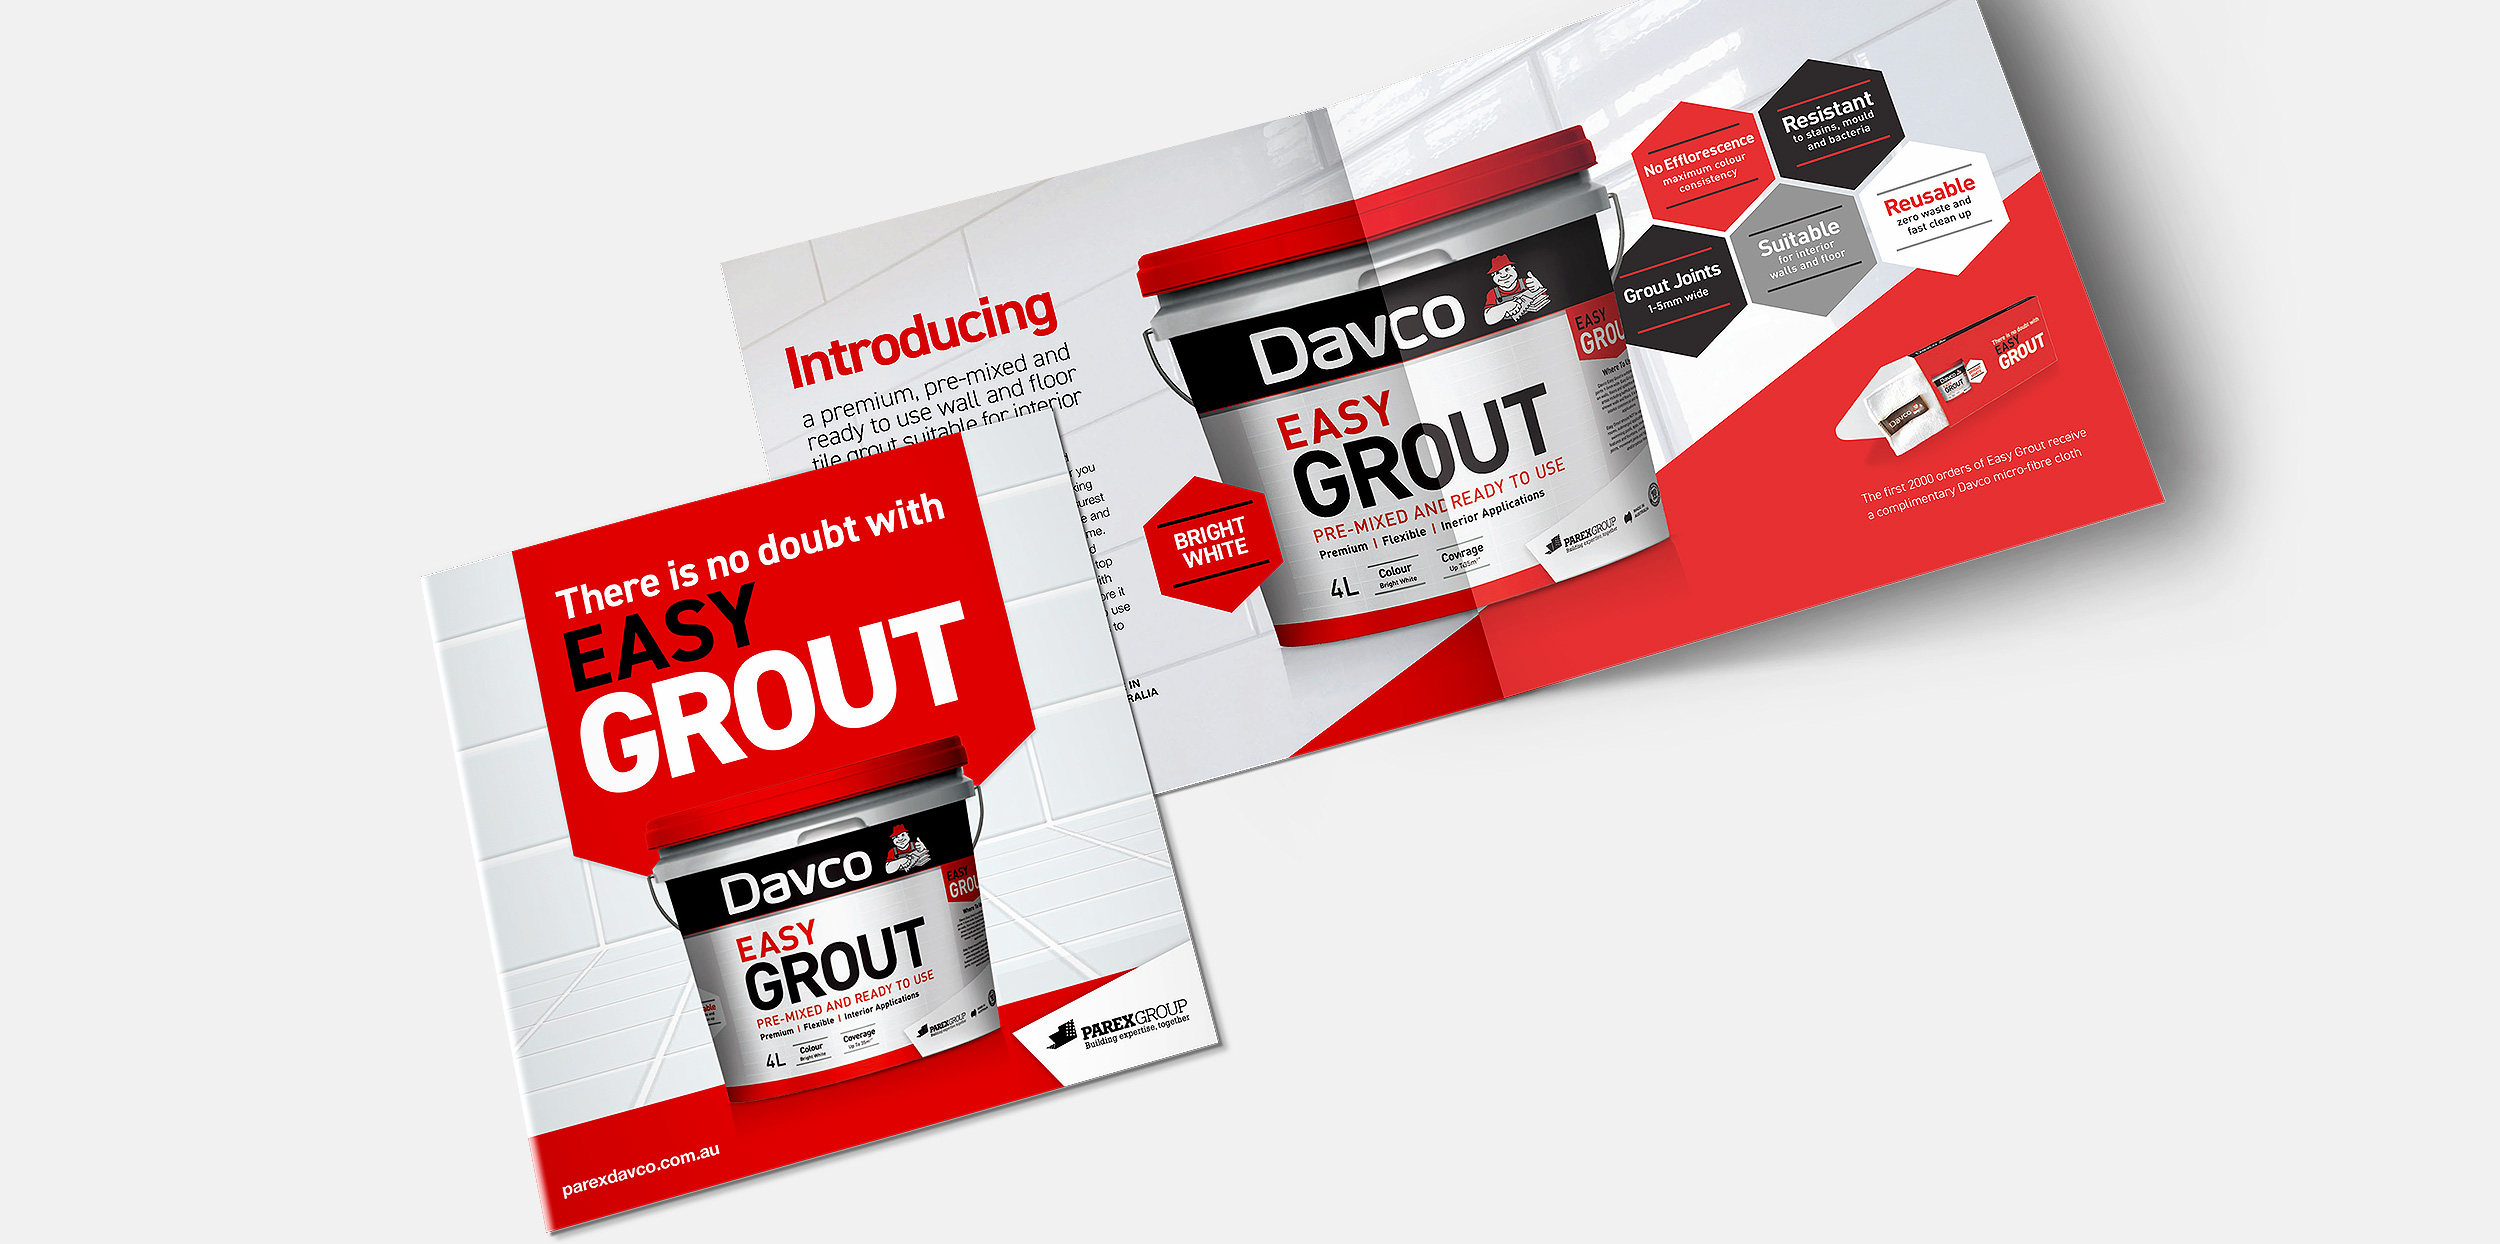 Handle-Branding-ParexGroup-Davco-Easy-Grout_04.jpg